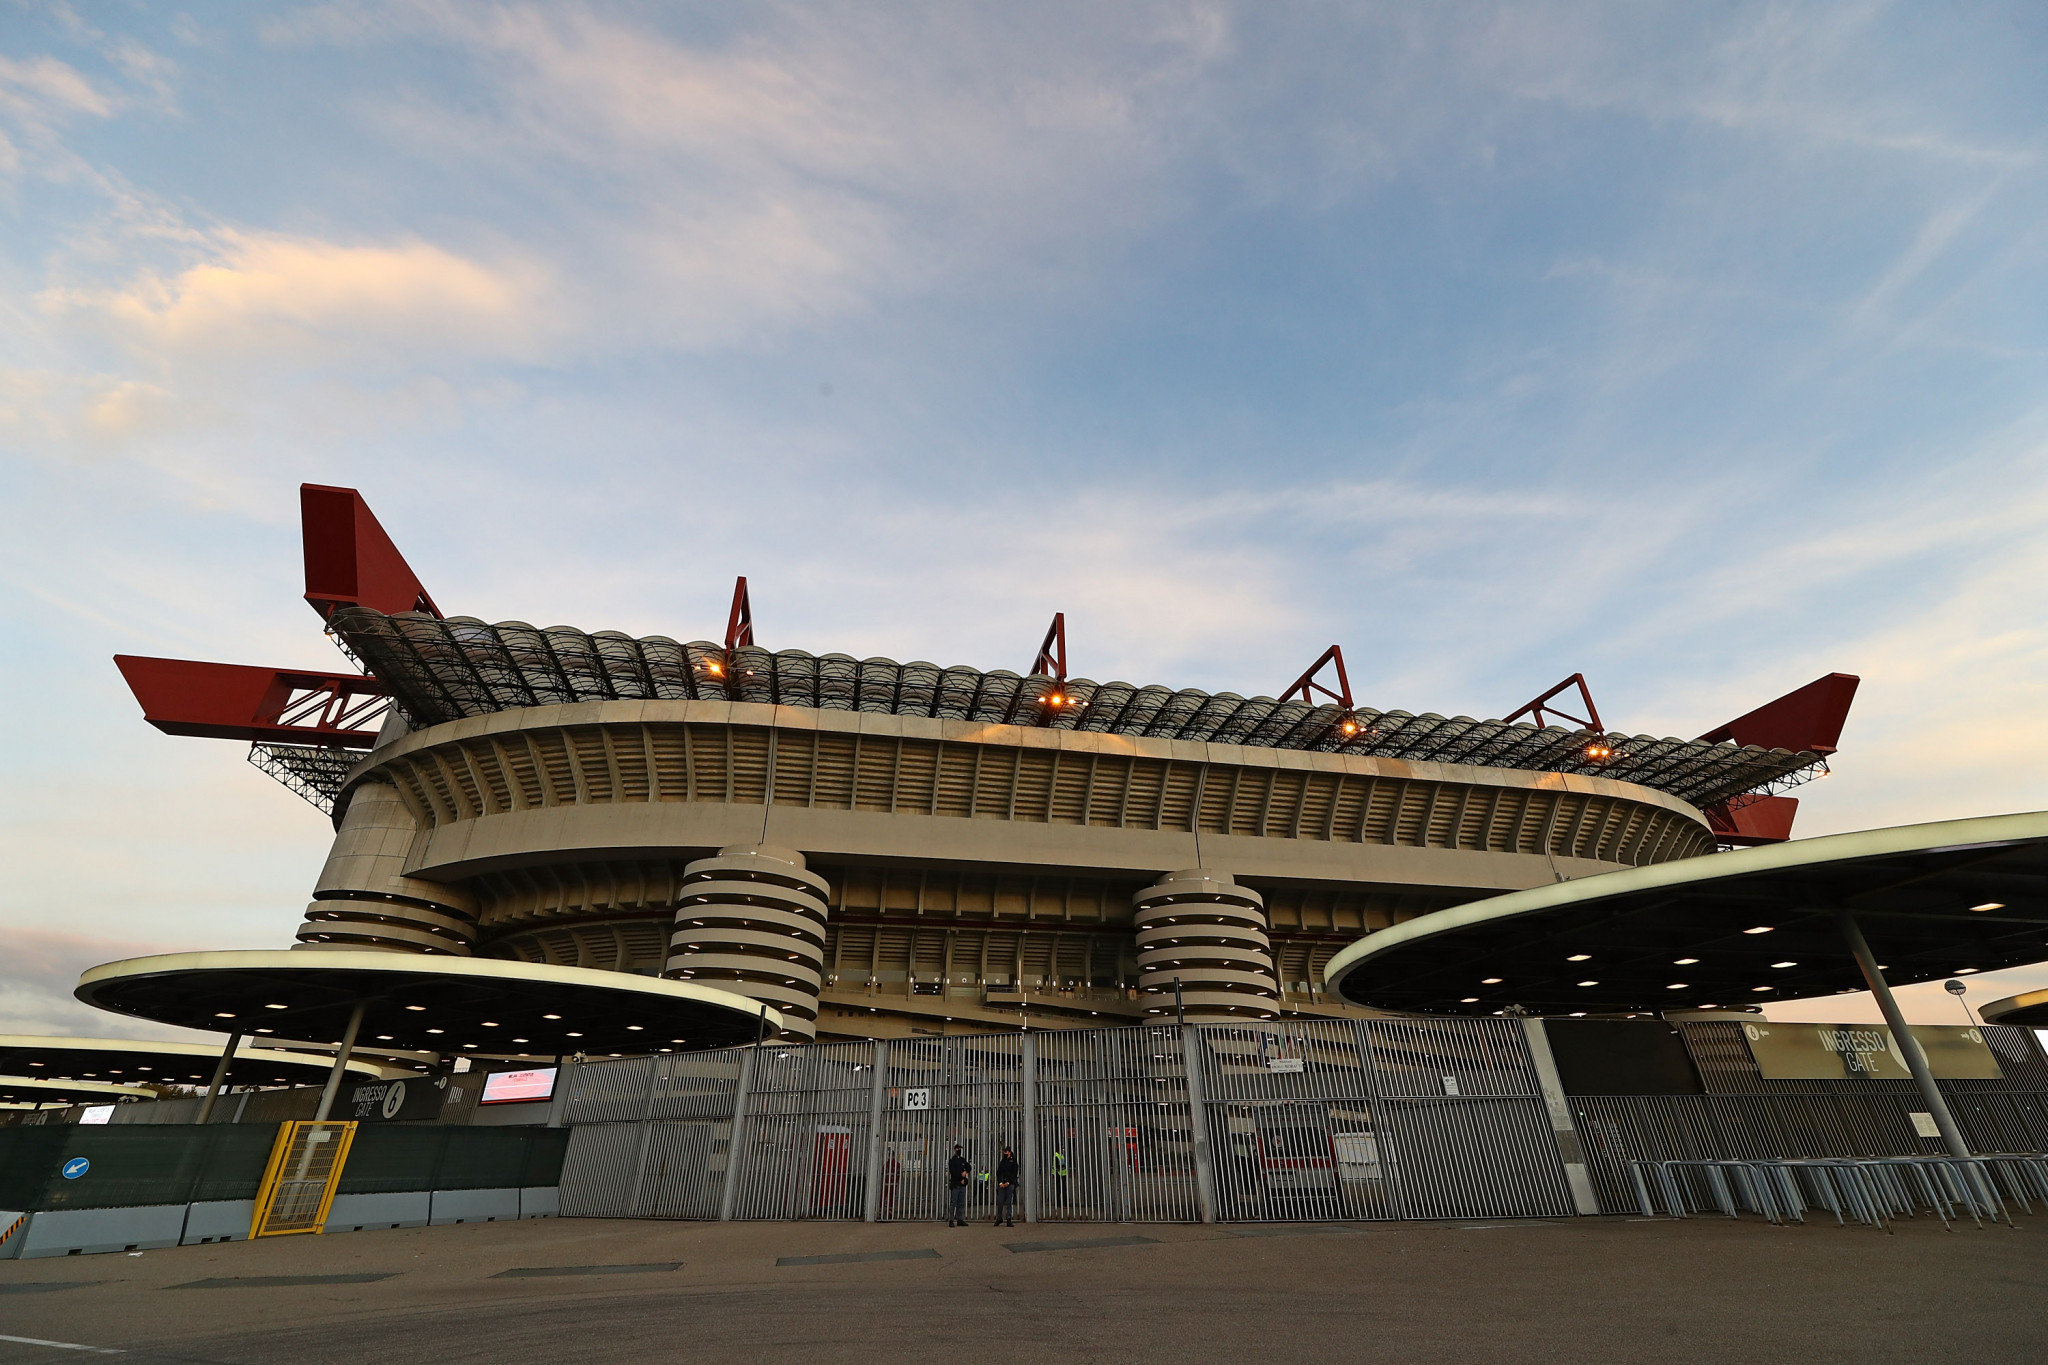 The San Siro is set to be used for the 2026 Olympic and Paralympic Games ©Getty Images